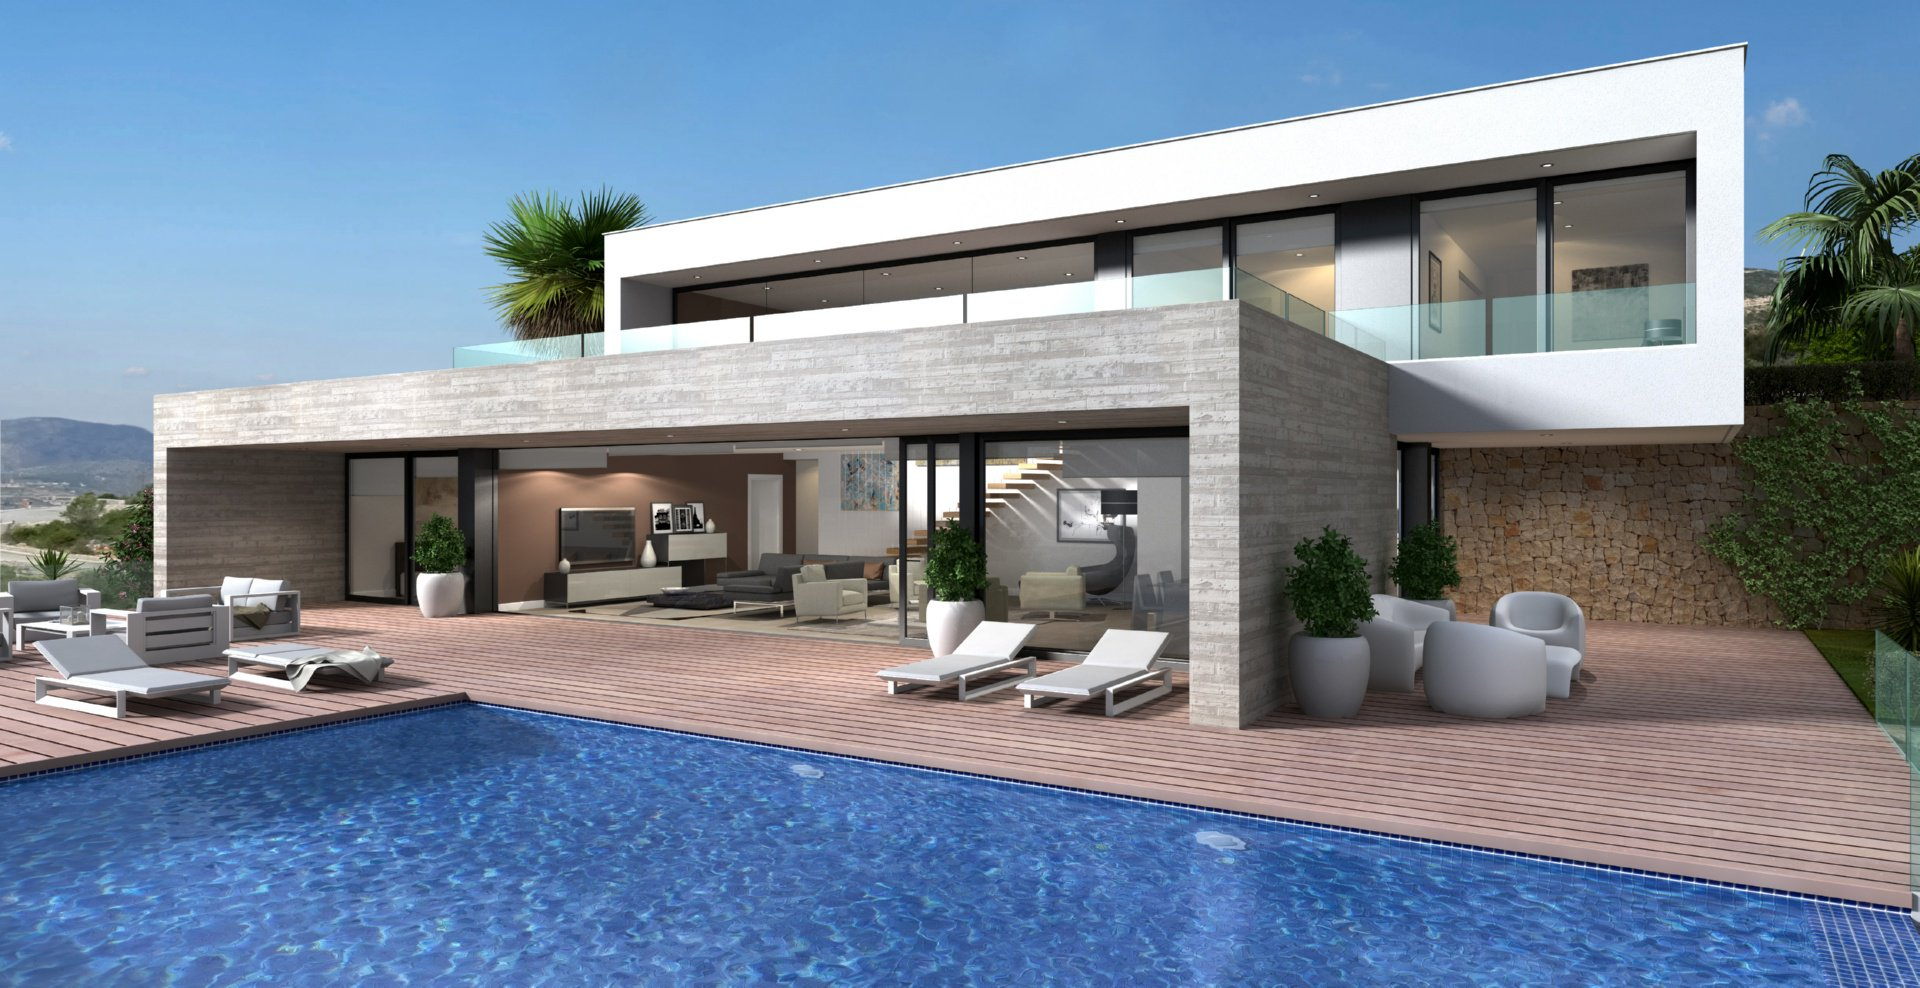 New modern build villa on privileged location on the cumbre del sol